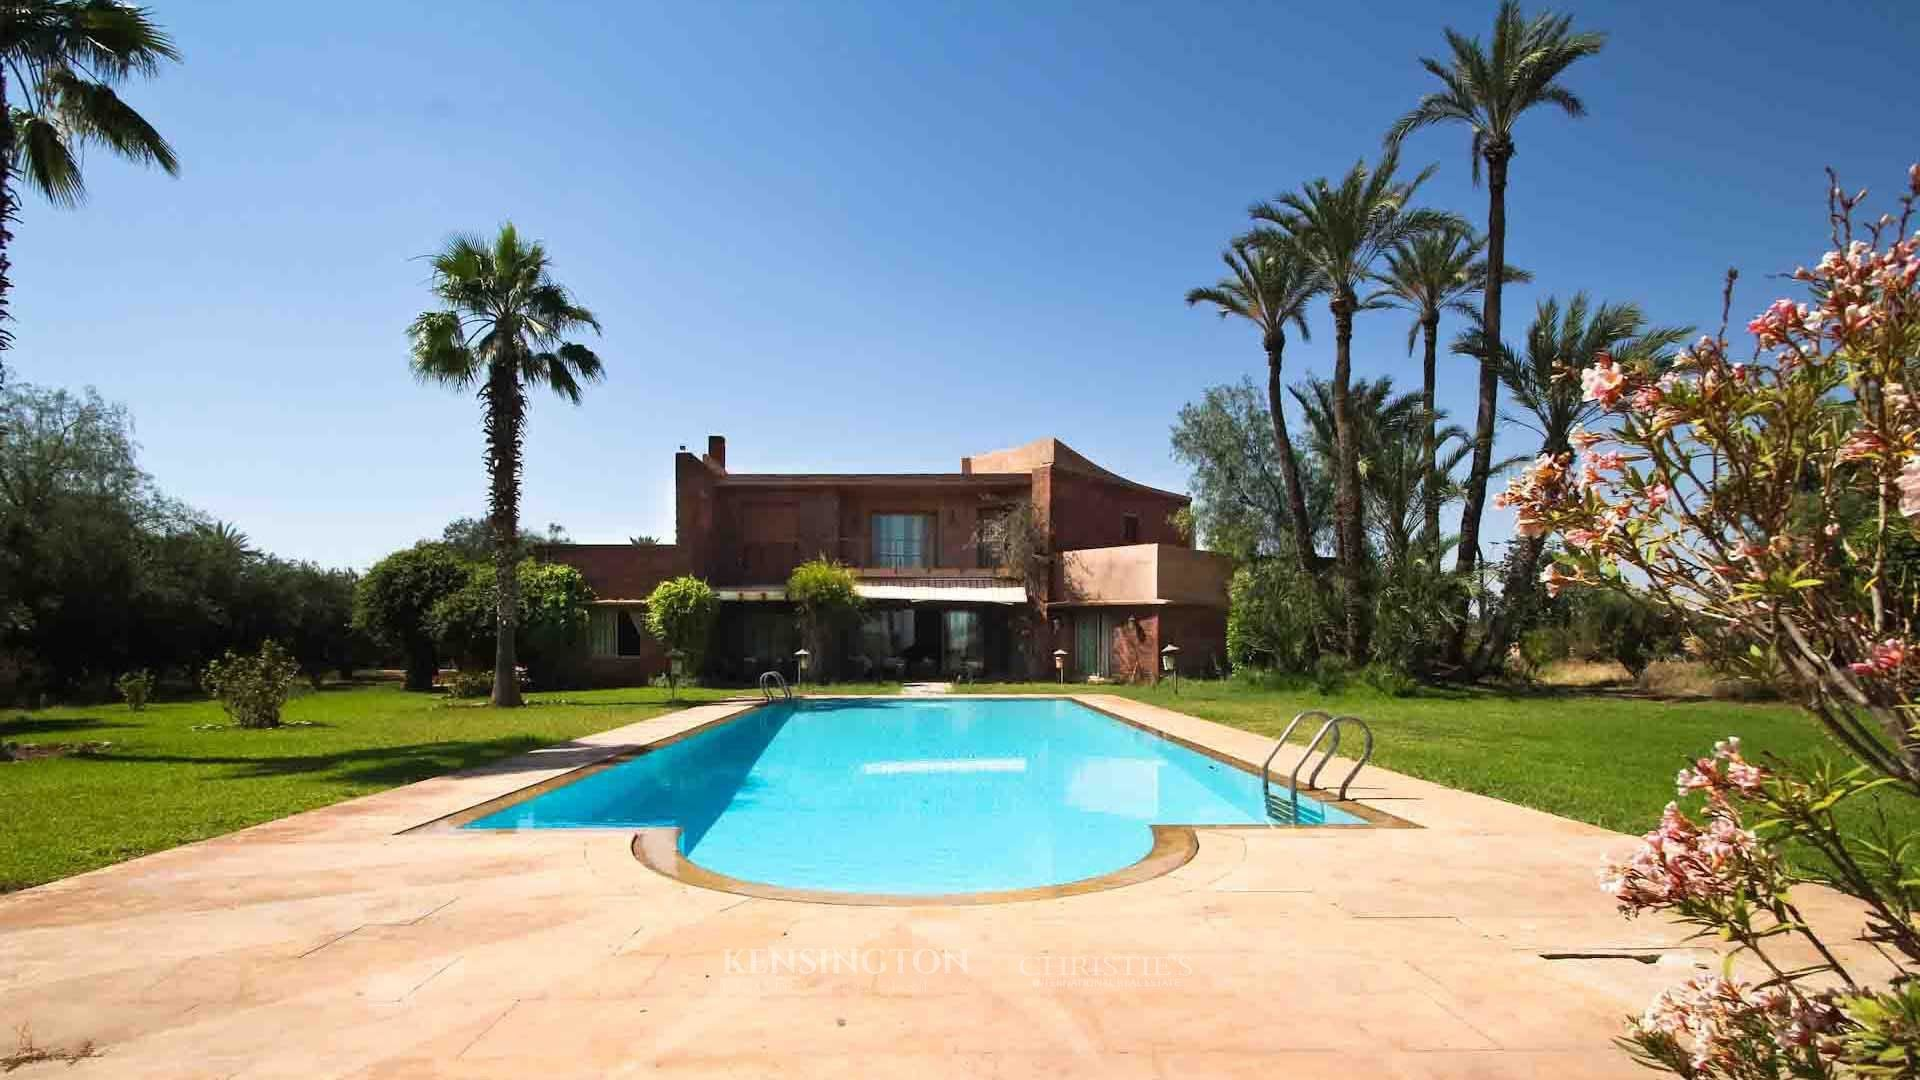 KPPM01033: Villa Atlas Luxury Villa Marrakech Morocco